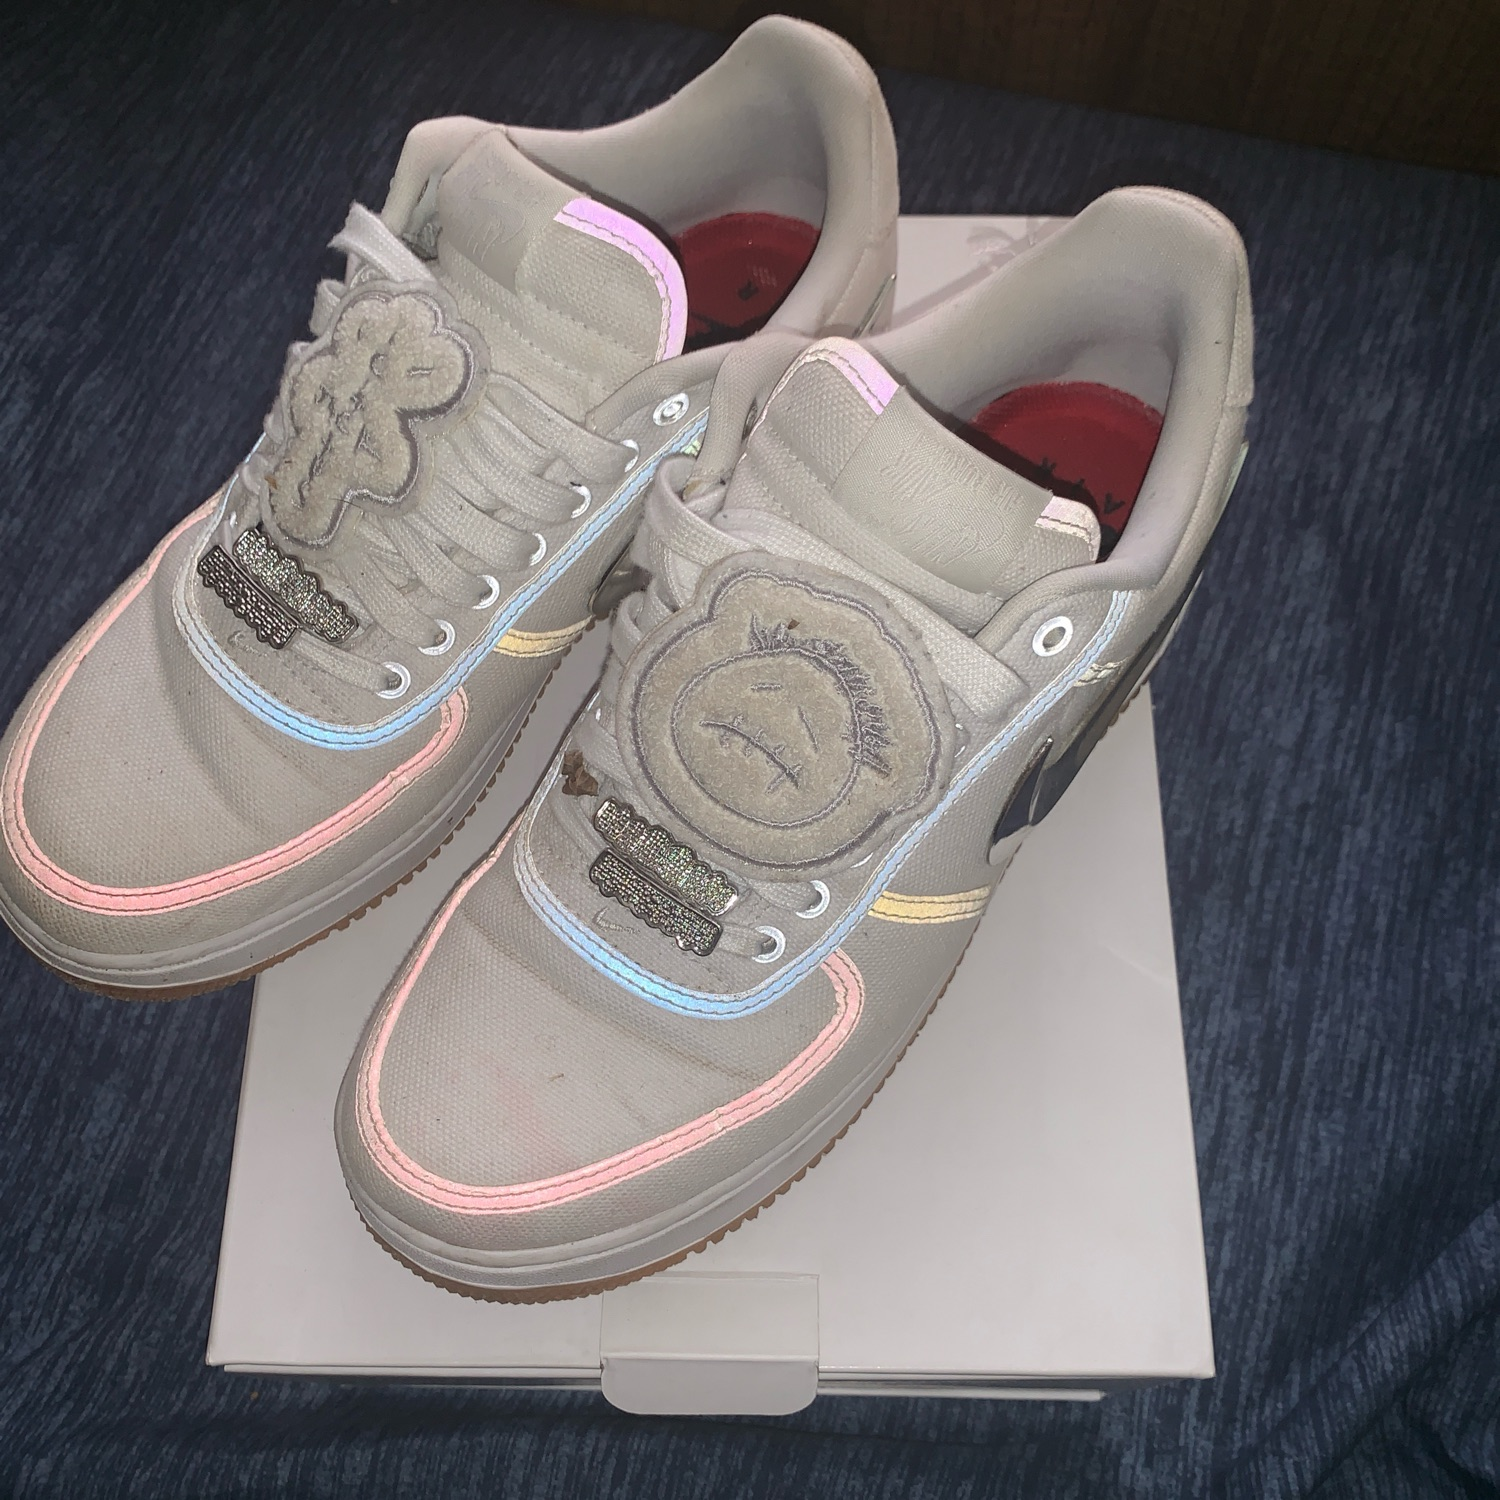 Travis Scott Air Force One